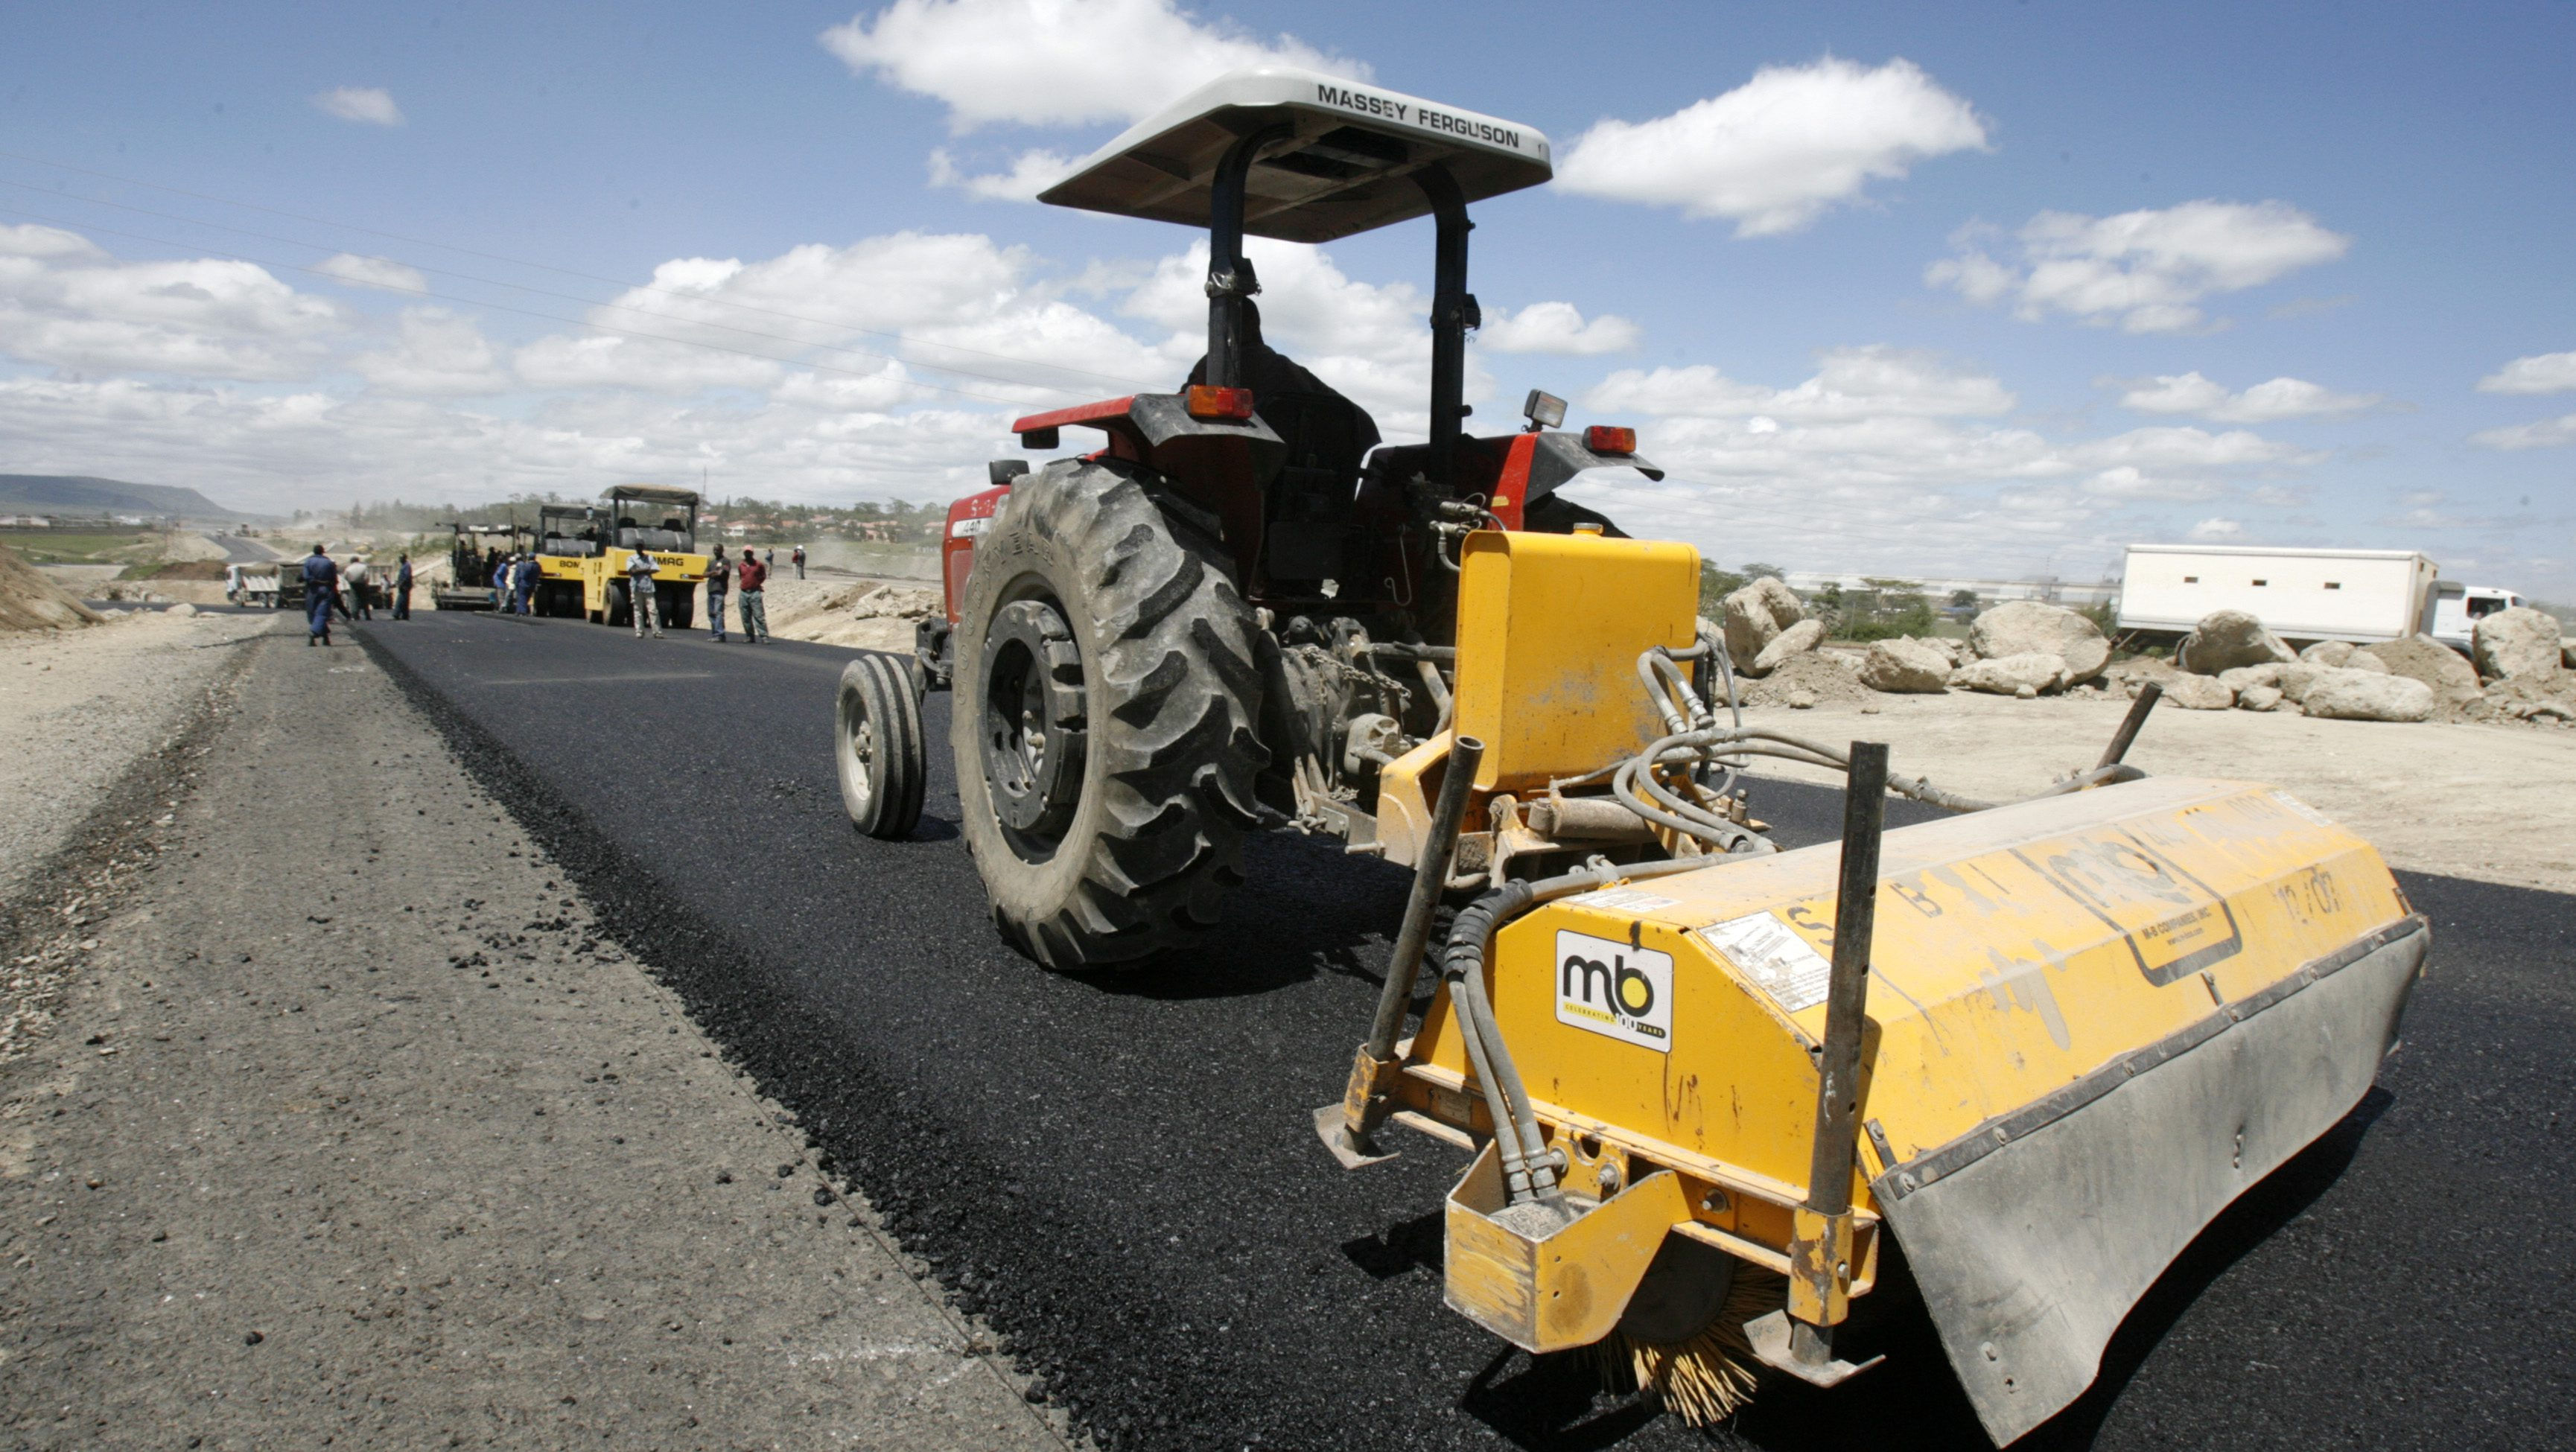 Contractors work on the Mombasa-Nairobi highway construction project in Athi River Kenya